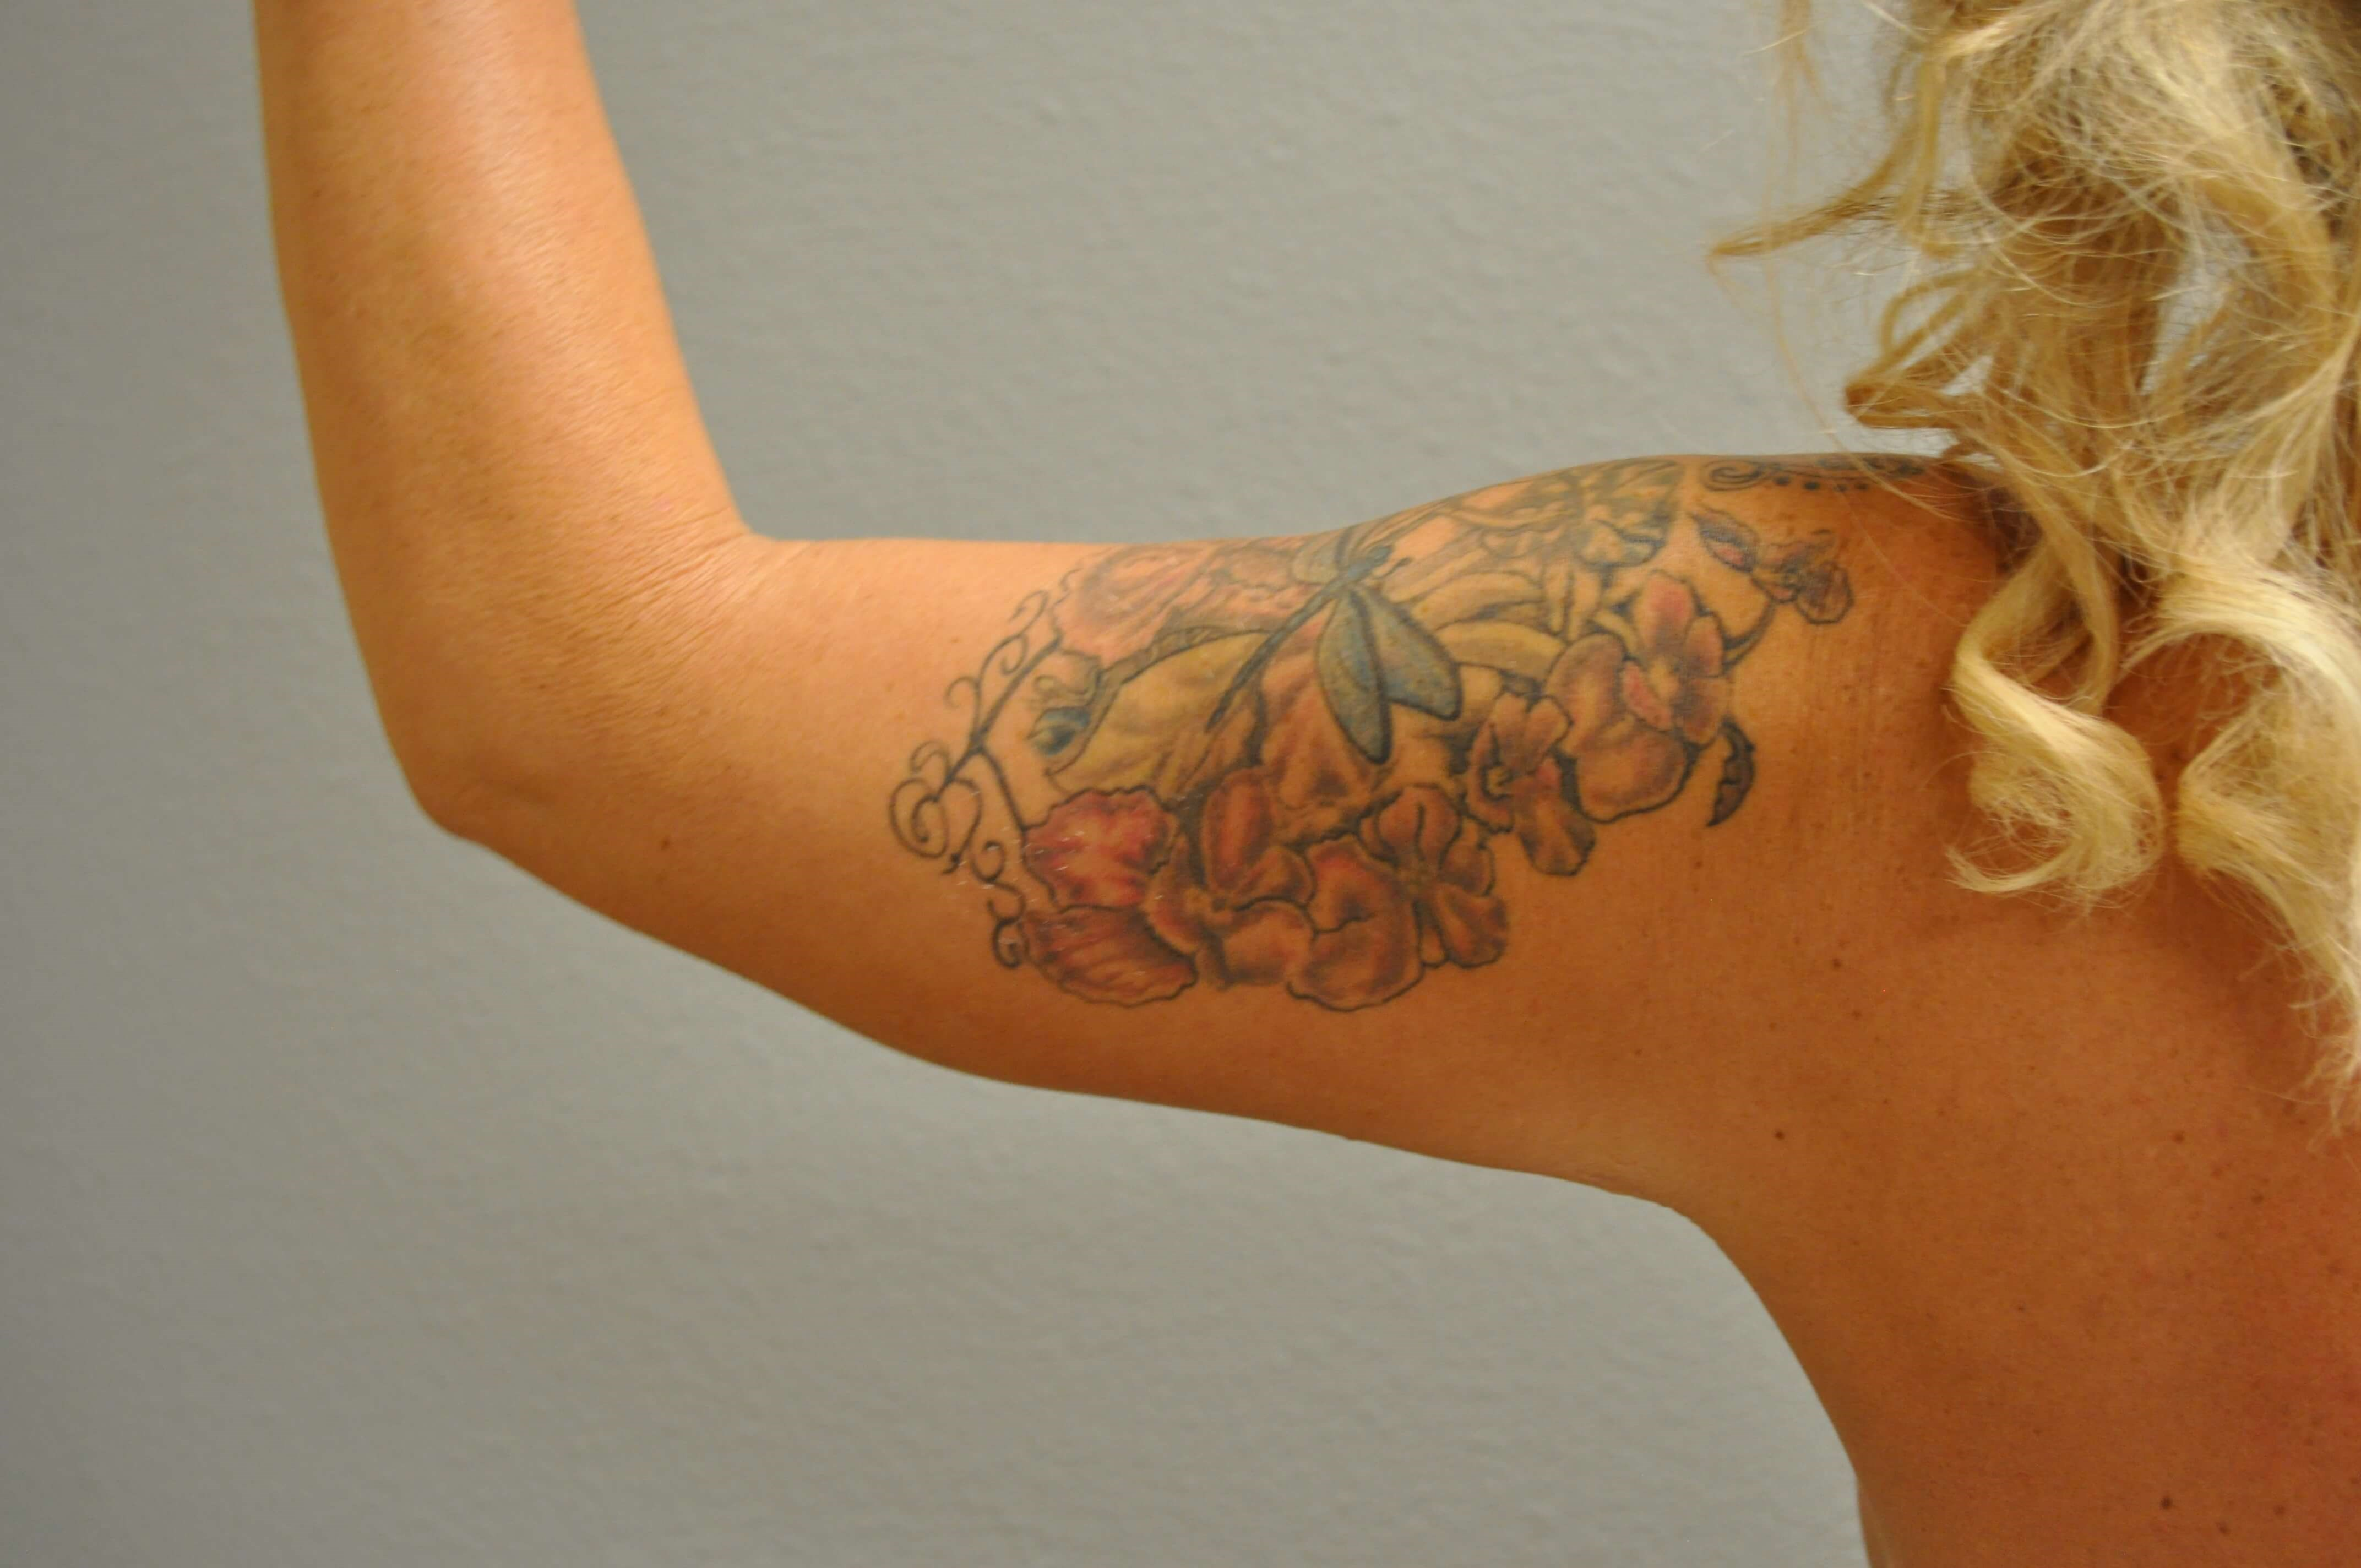 Back View of Arm After